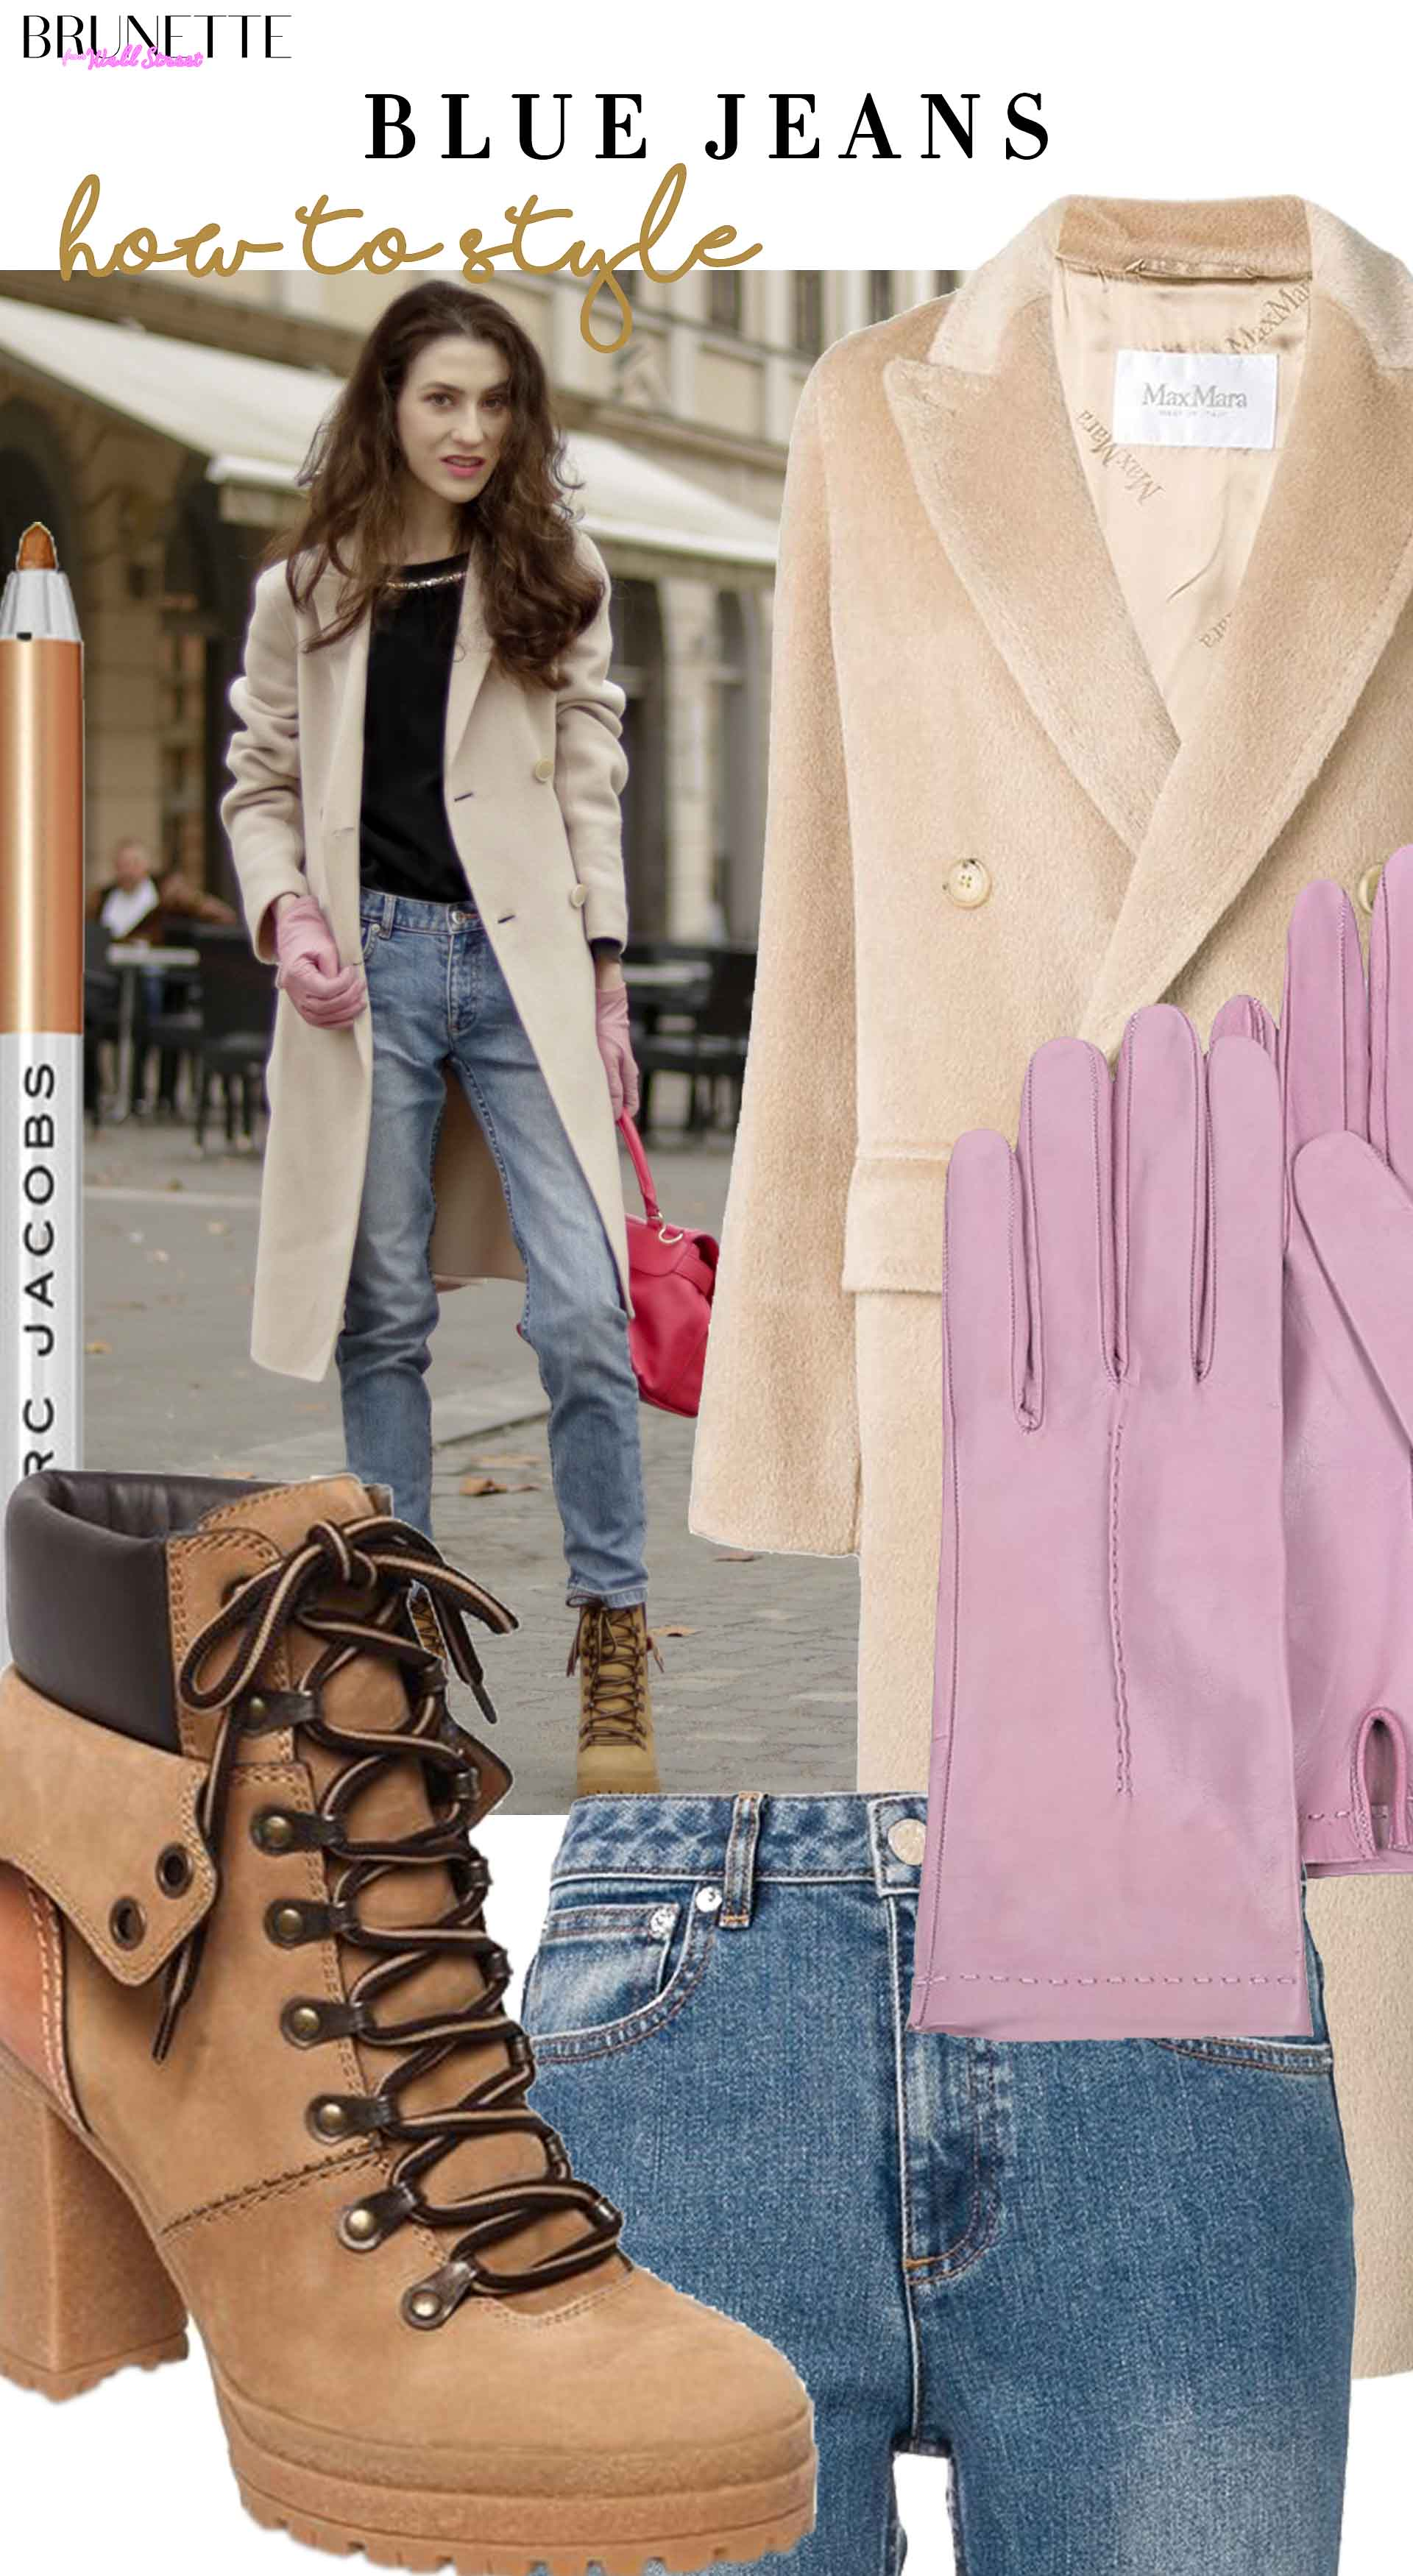 Fashion Blogger Veronika Lipar of Brunette from Wall Street sharing how to wear light blue jeans in winter 2019